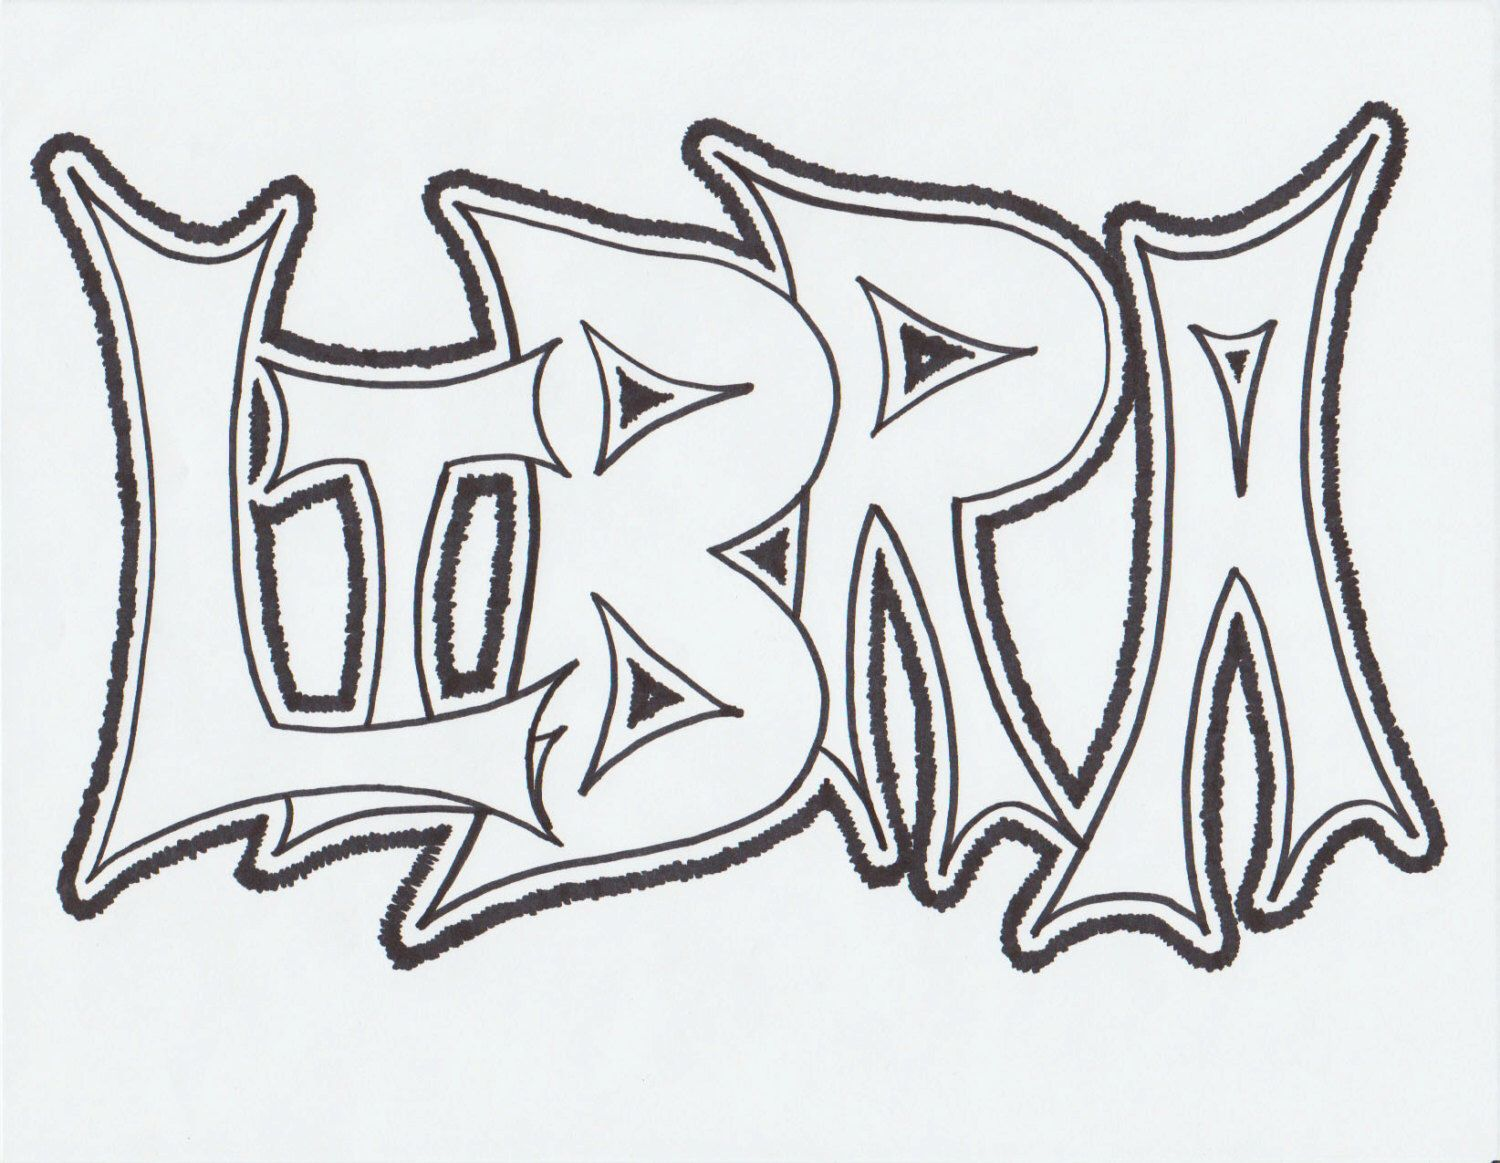 libra horoscope coloring page zodiac graffiti art adult color page downloadable coloring pages therapy by hapleggrafitti